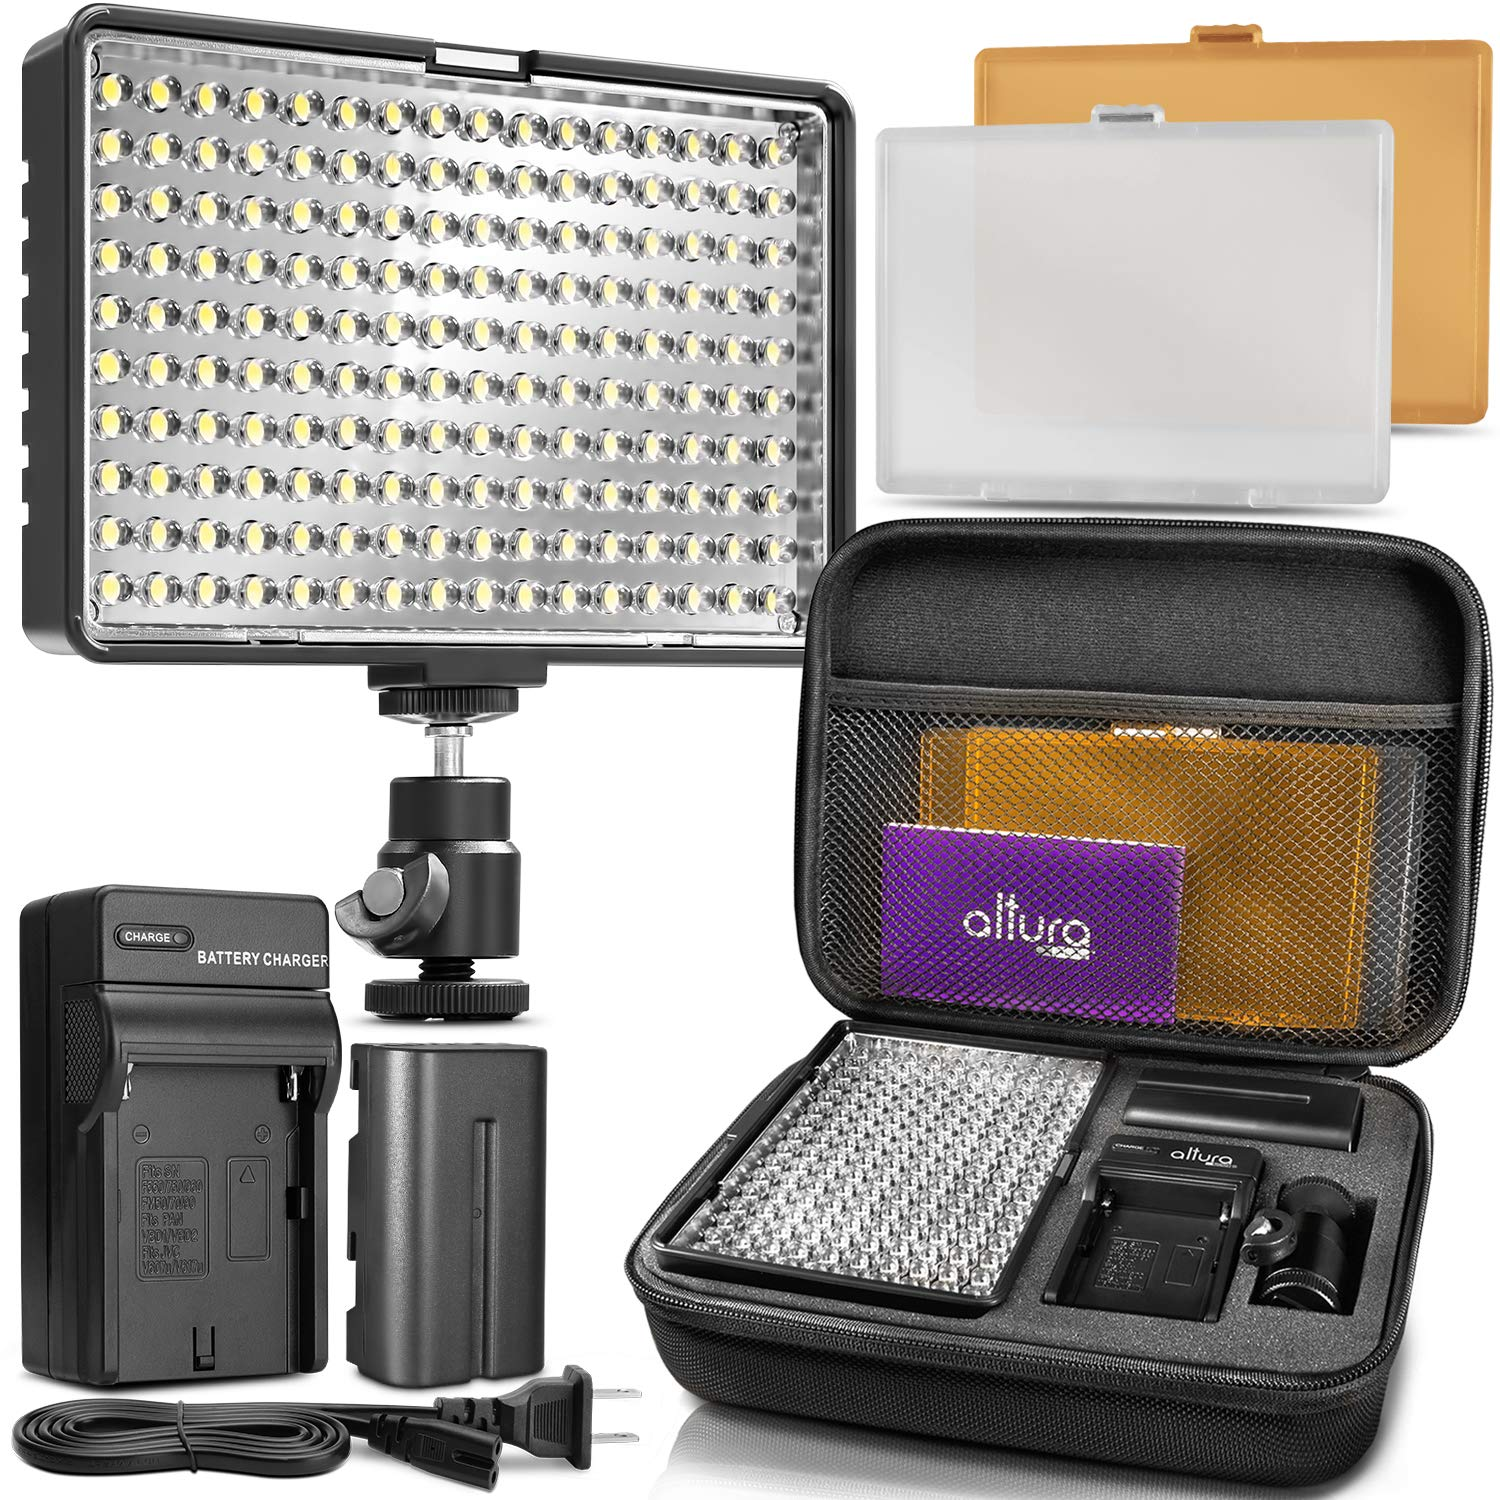 Altura Photo 160 LED Video Light for DSLR Camera and Camcorder Complete Kit - Ultra Bright Dimmable with Battery, Charger, Filters, and Carry Case (Canon, Nikon, Panasonic, Sony, Samsung, Olympus) by Altura Photo